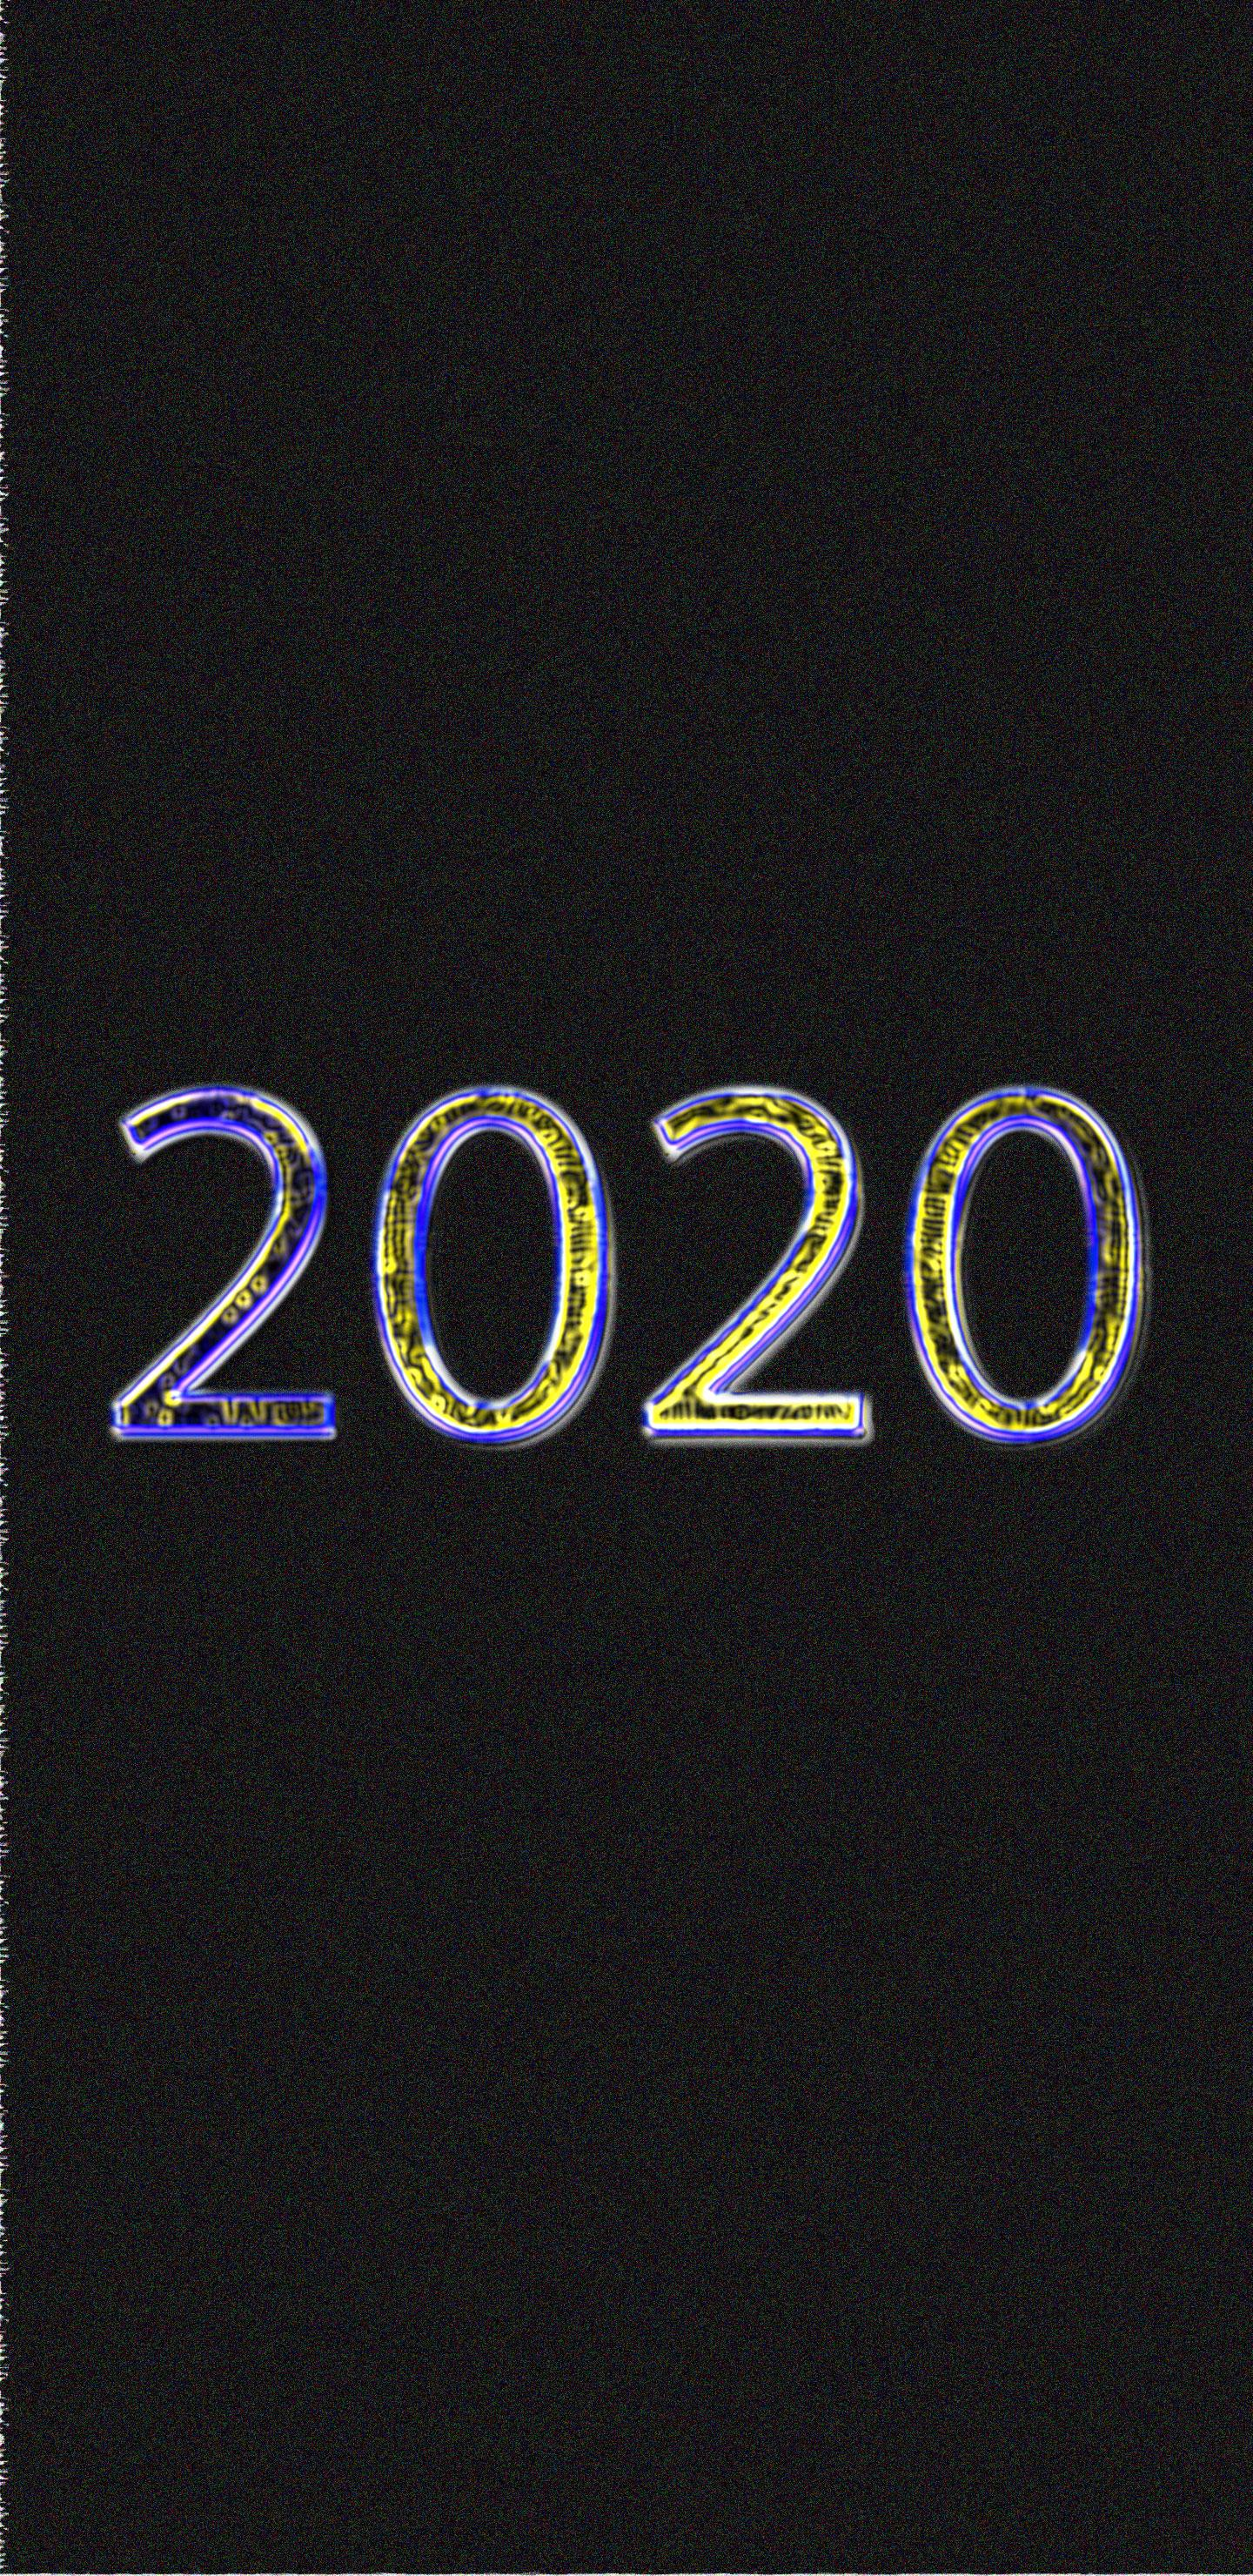 2020 Phone Wallpapers 1440x2960